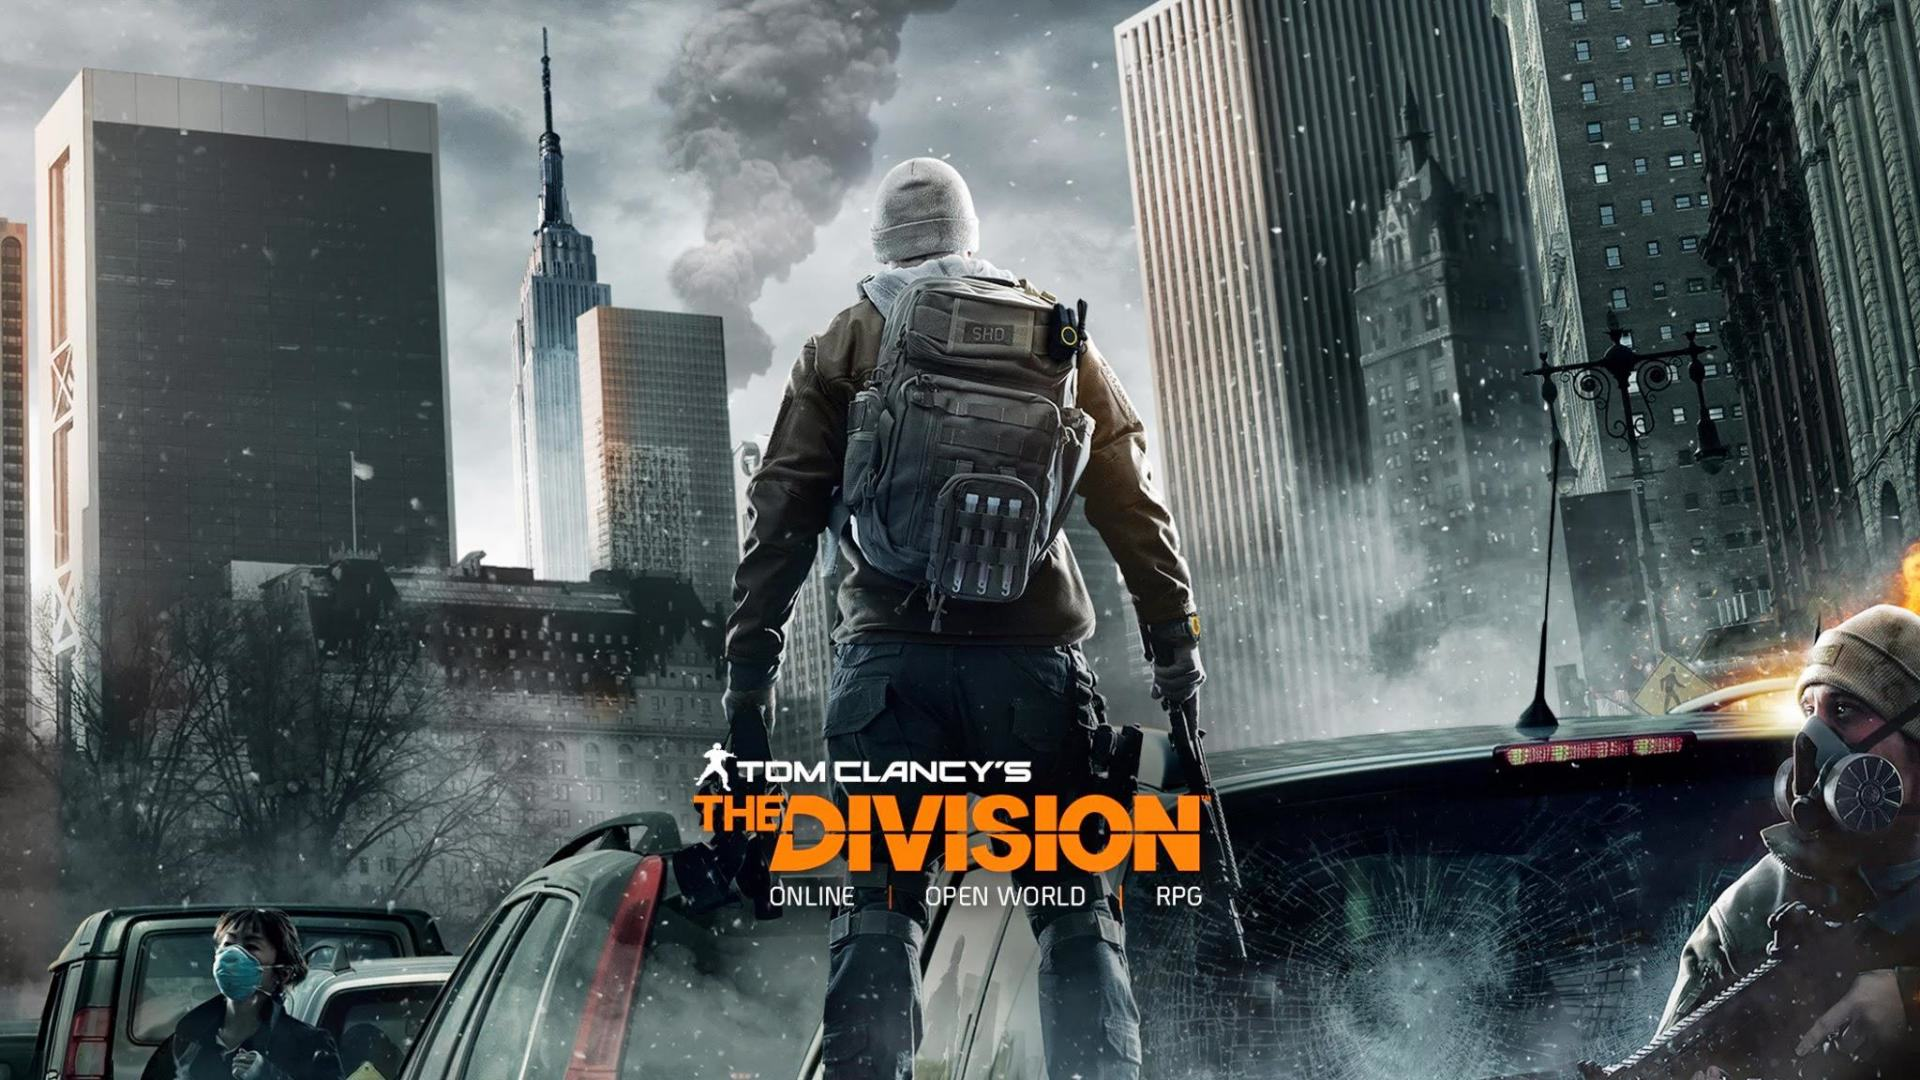 We Had An Exclusive Look At The Division Ahead Of Release Day